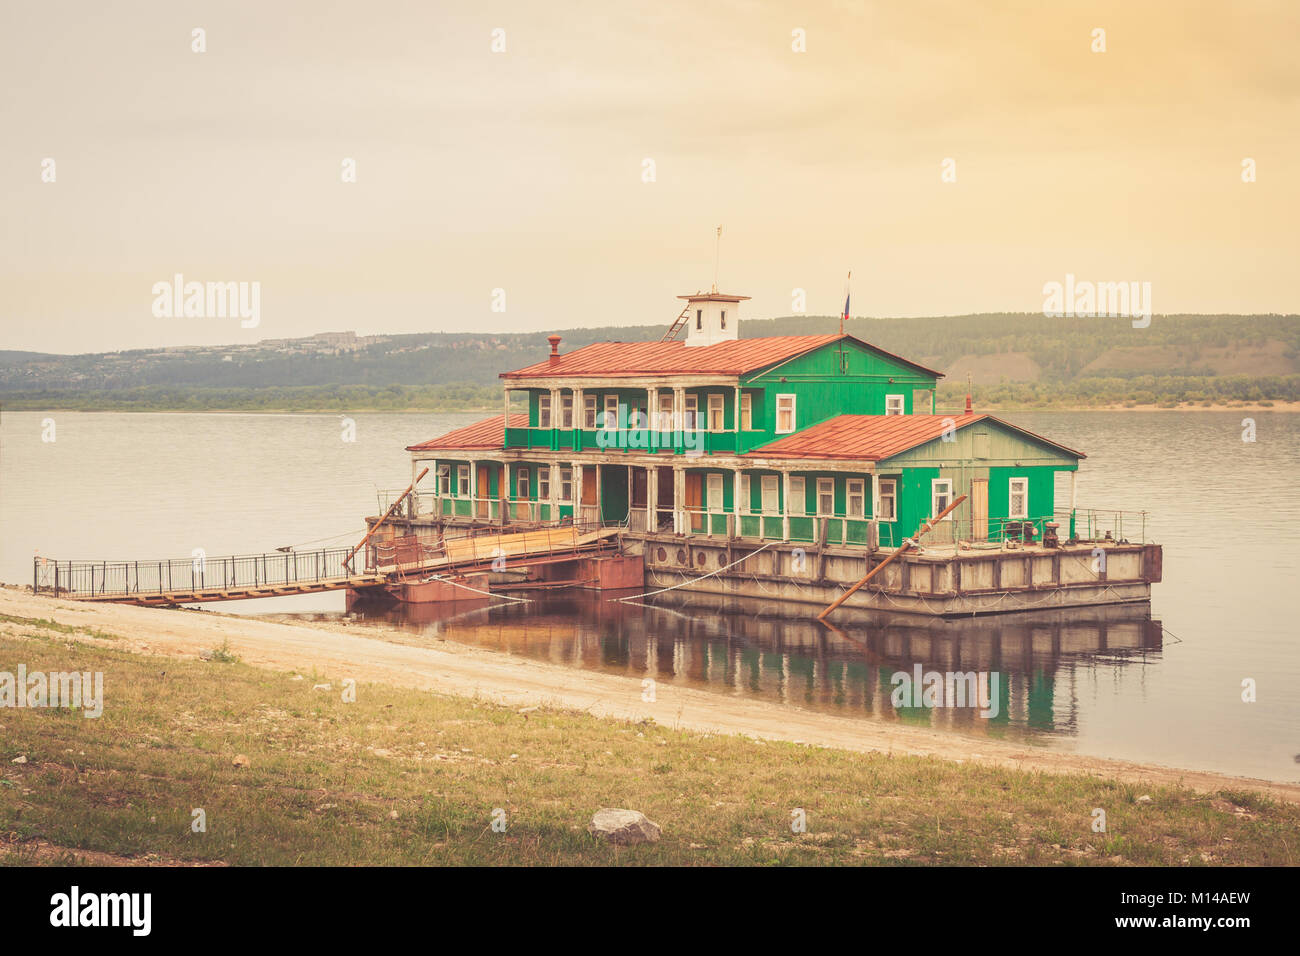 Small wooden mobile floating pier on the Volga river. Toned imag - Stock Image